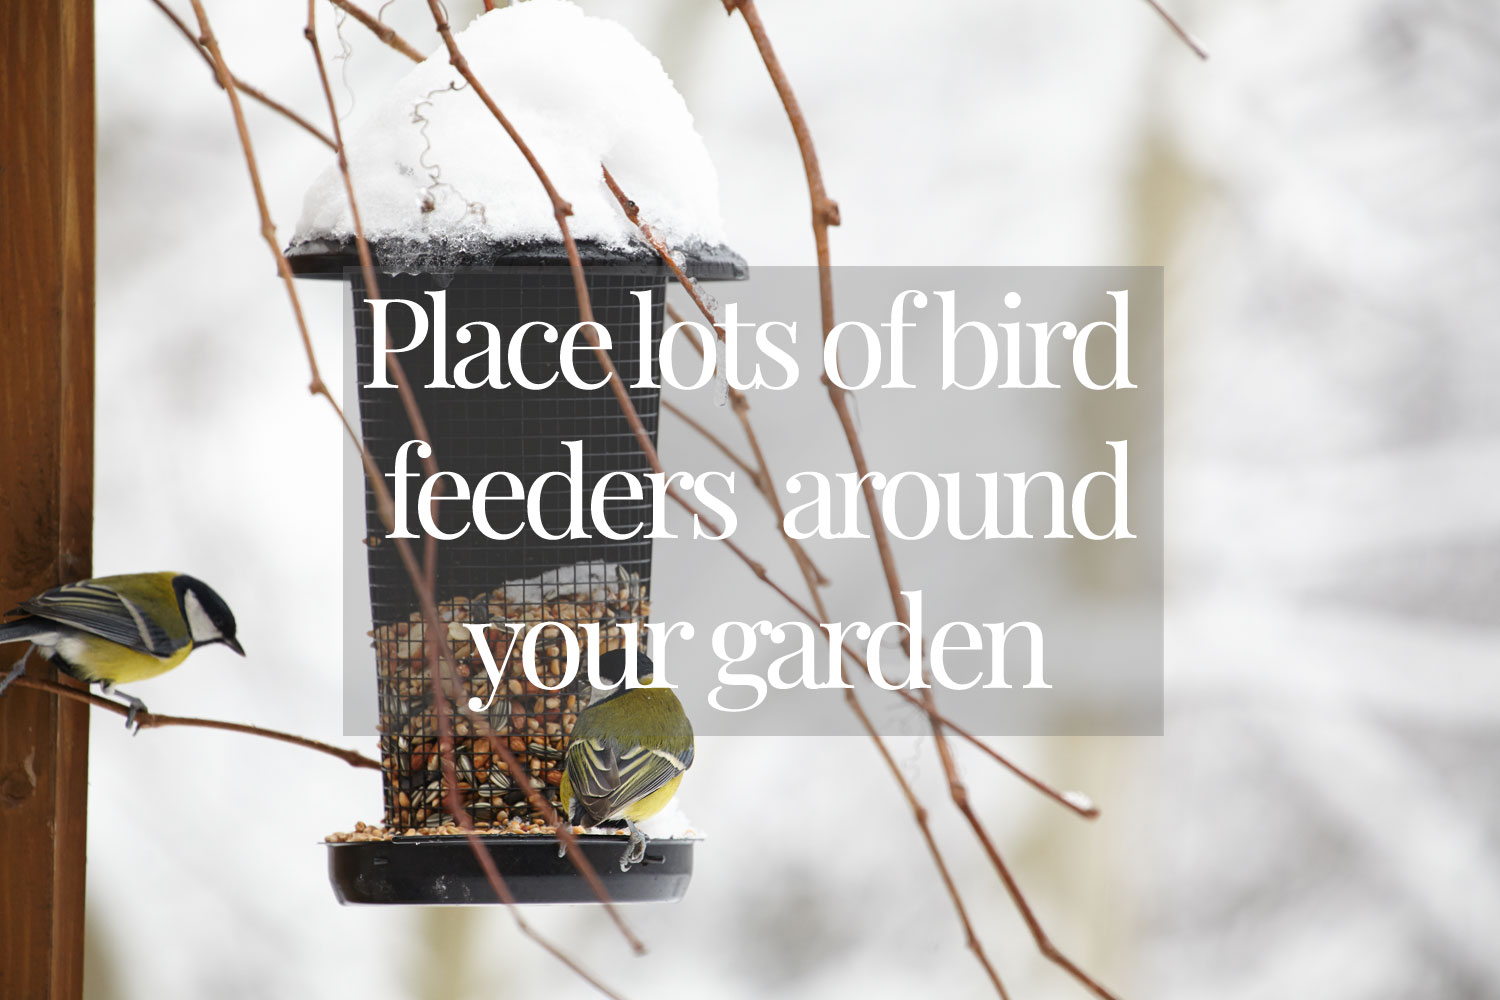 Place-lots-of-bird-feeders-around-your-garden-at-strategic-areas-no-tex